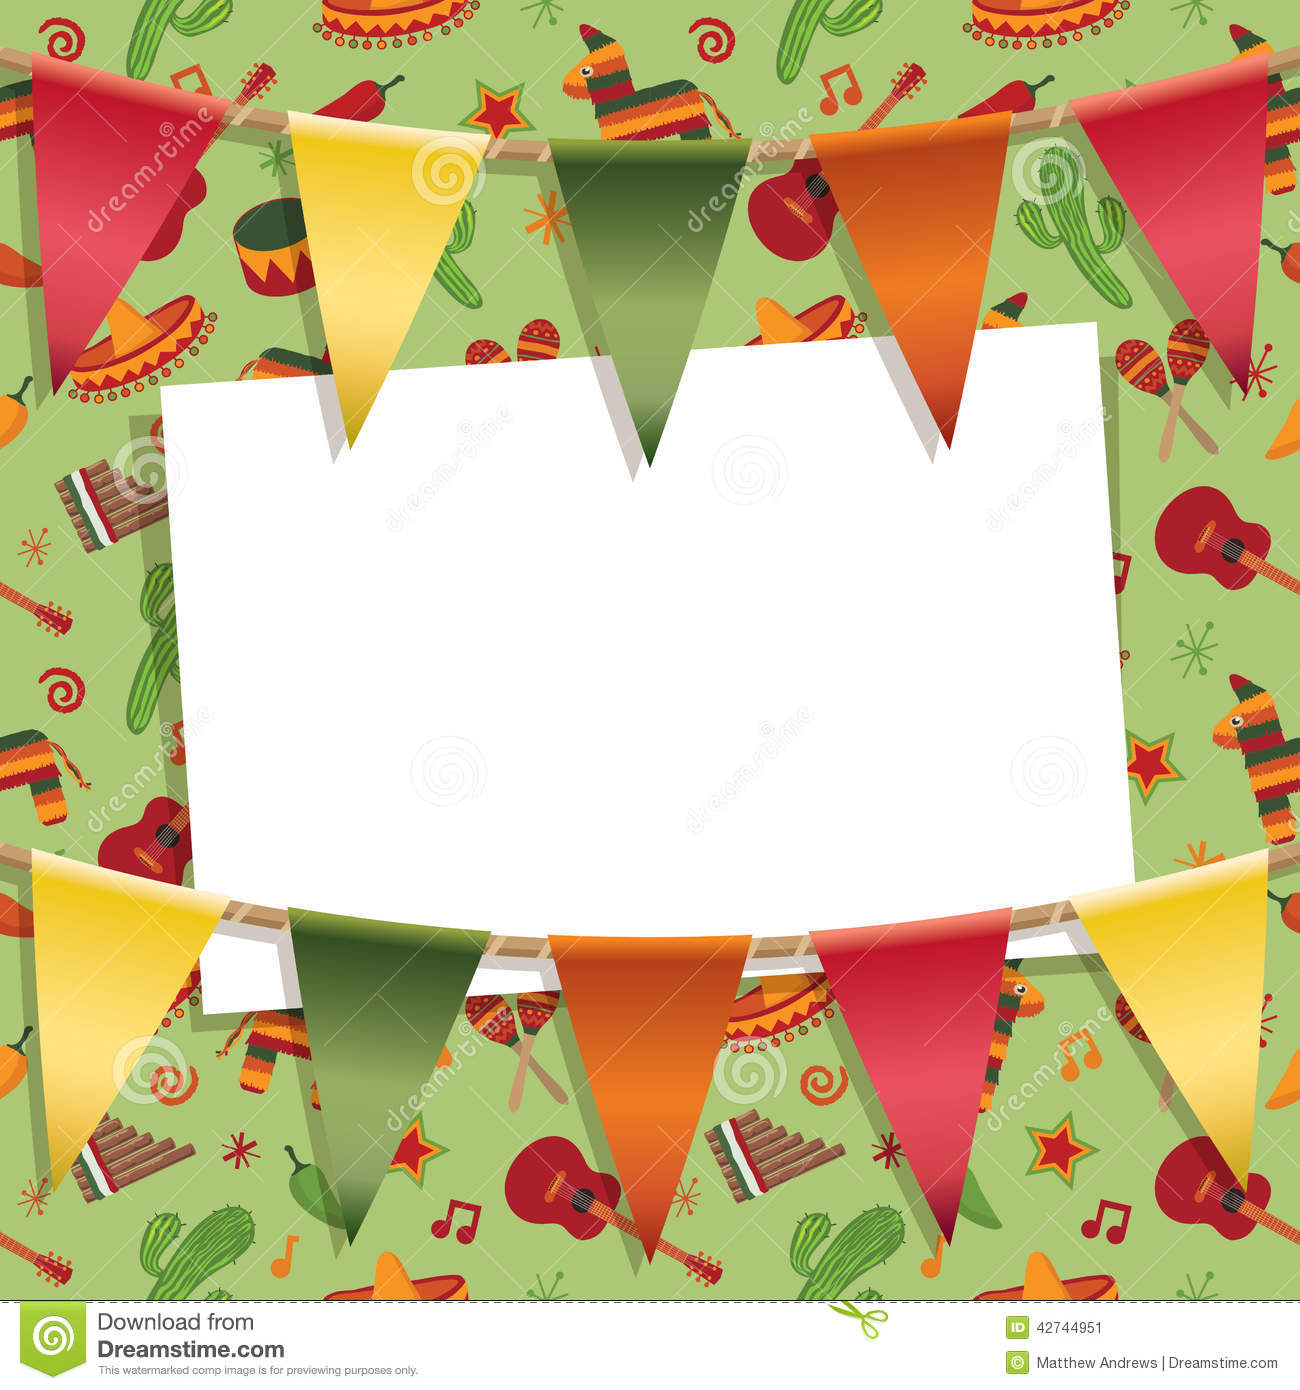 Mexican party card decoration with background pattern, bunting and ...